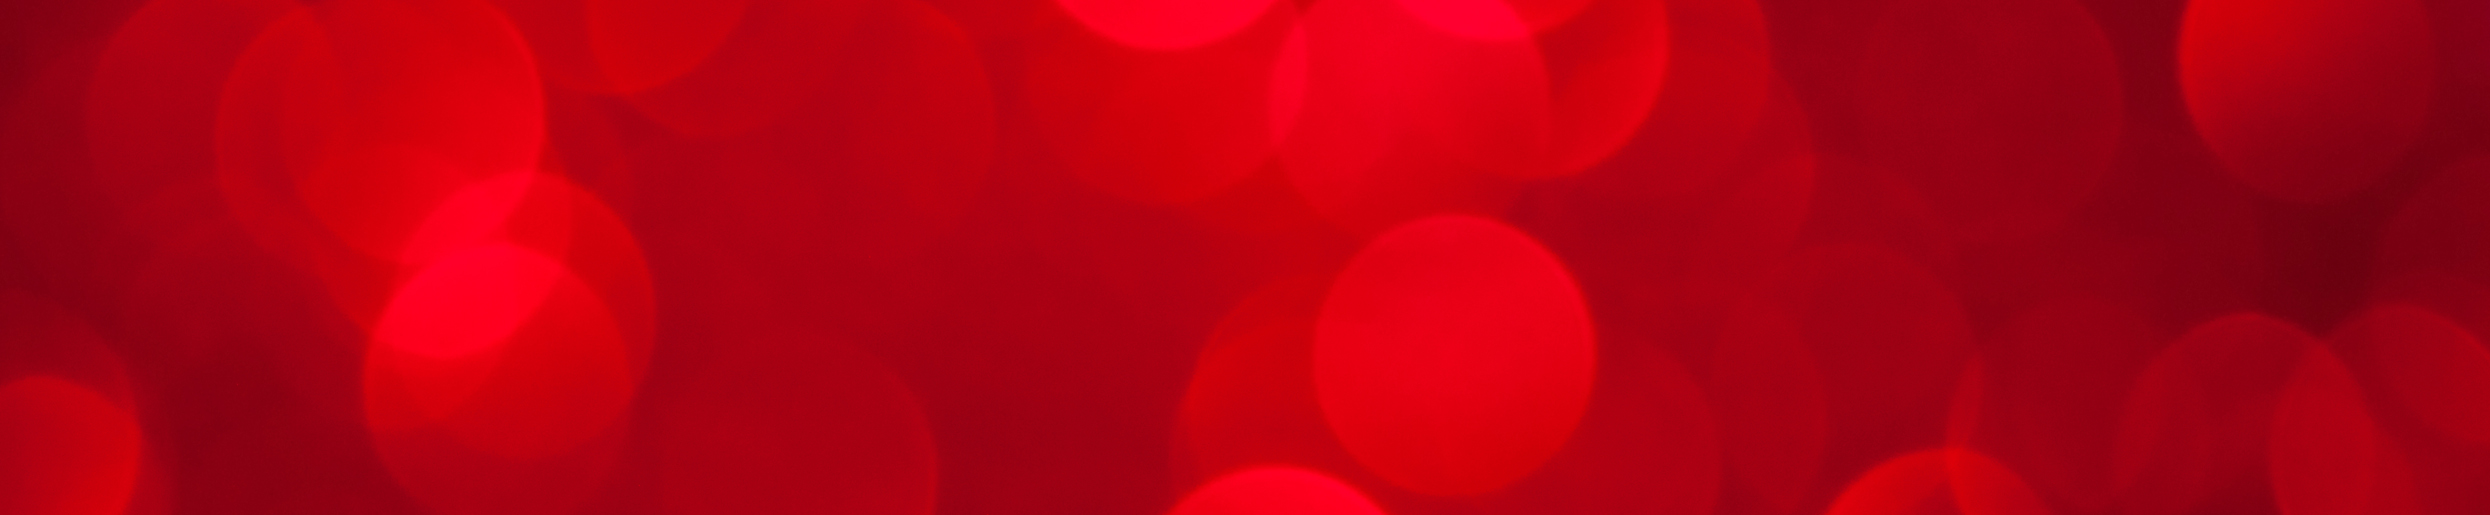 red-holiday-background-2490